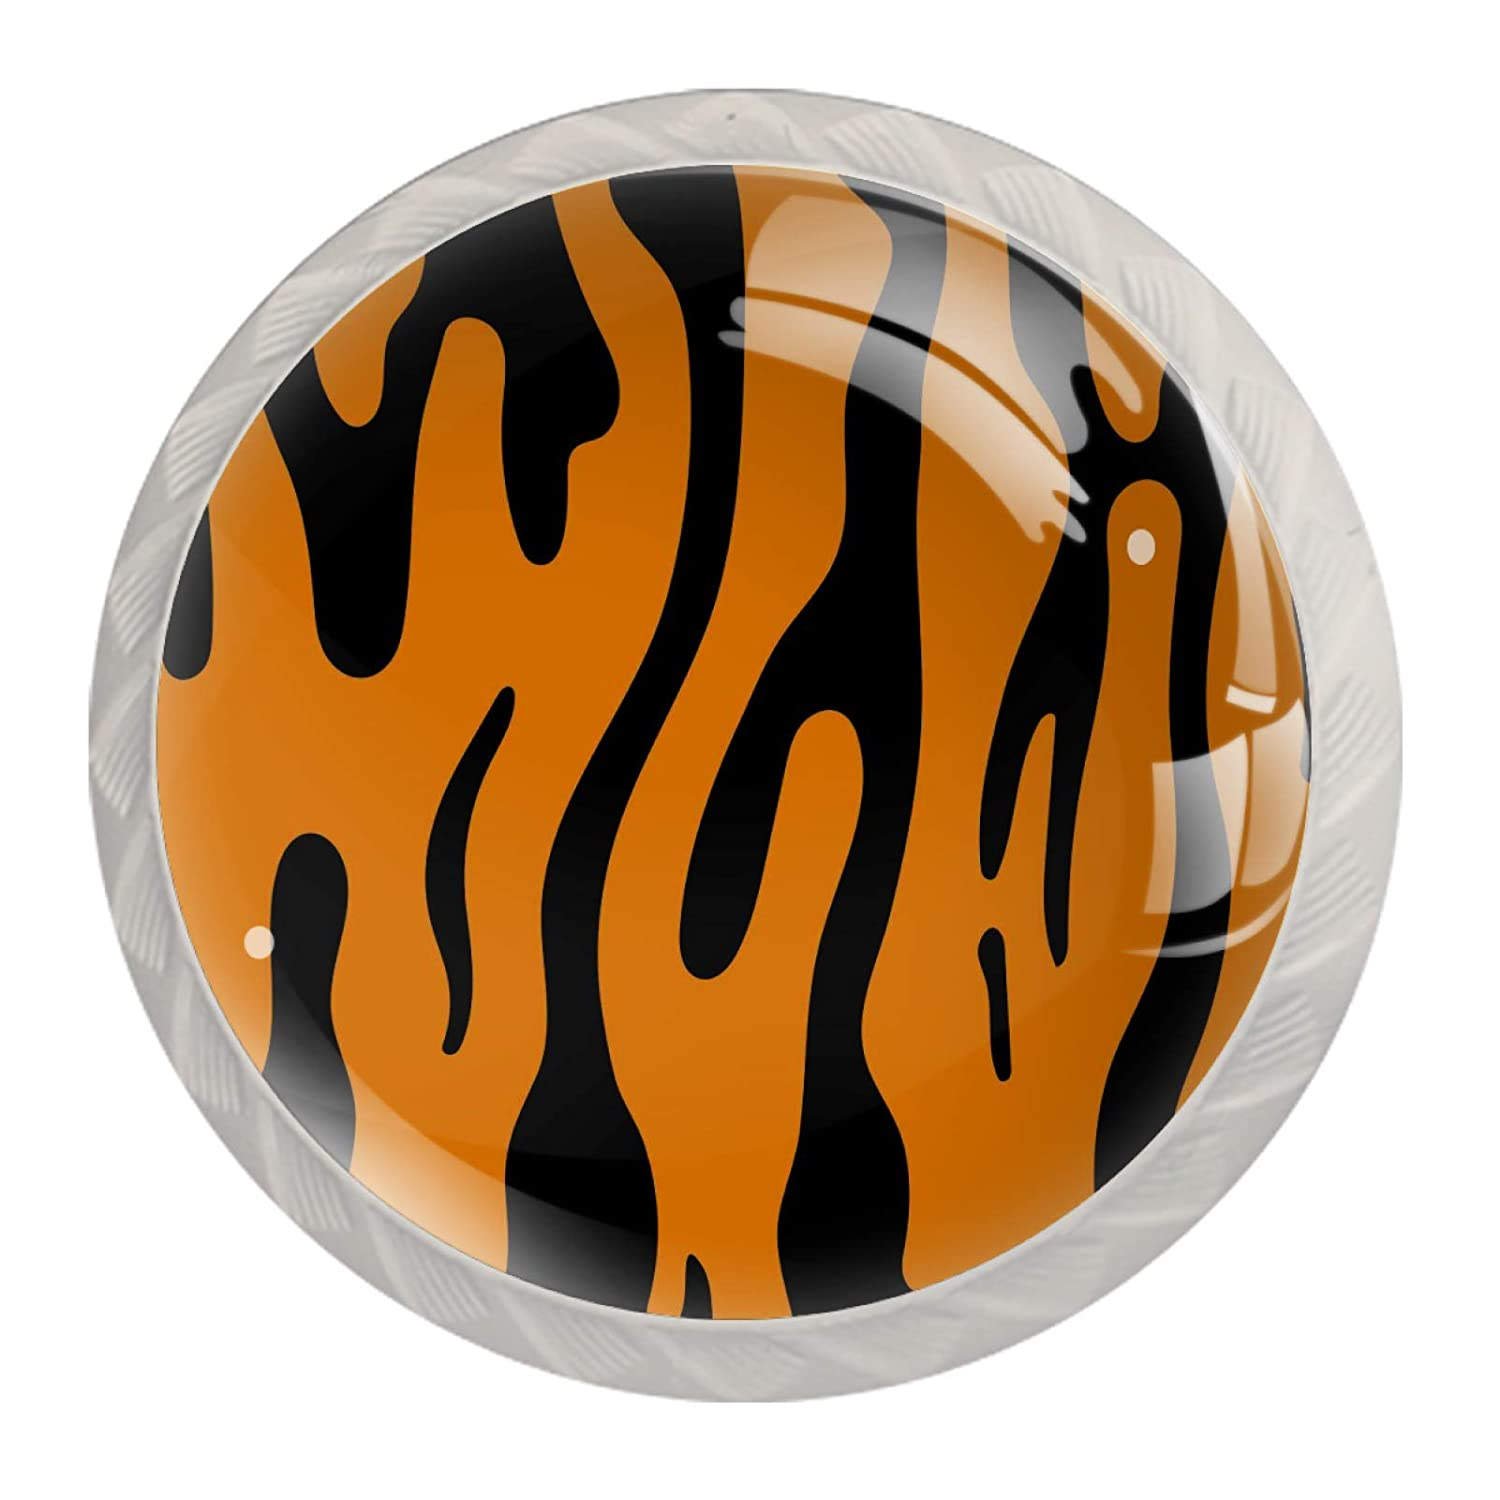 Wardrobe Ranking integrated 1st place Over item handling ☆ Knobs Tiger Stripes Cabinet Kitchen Pattern Home